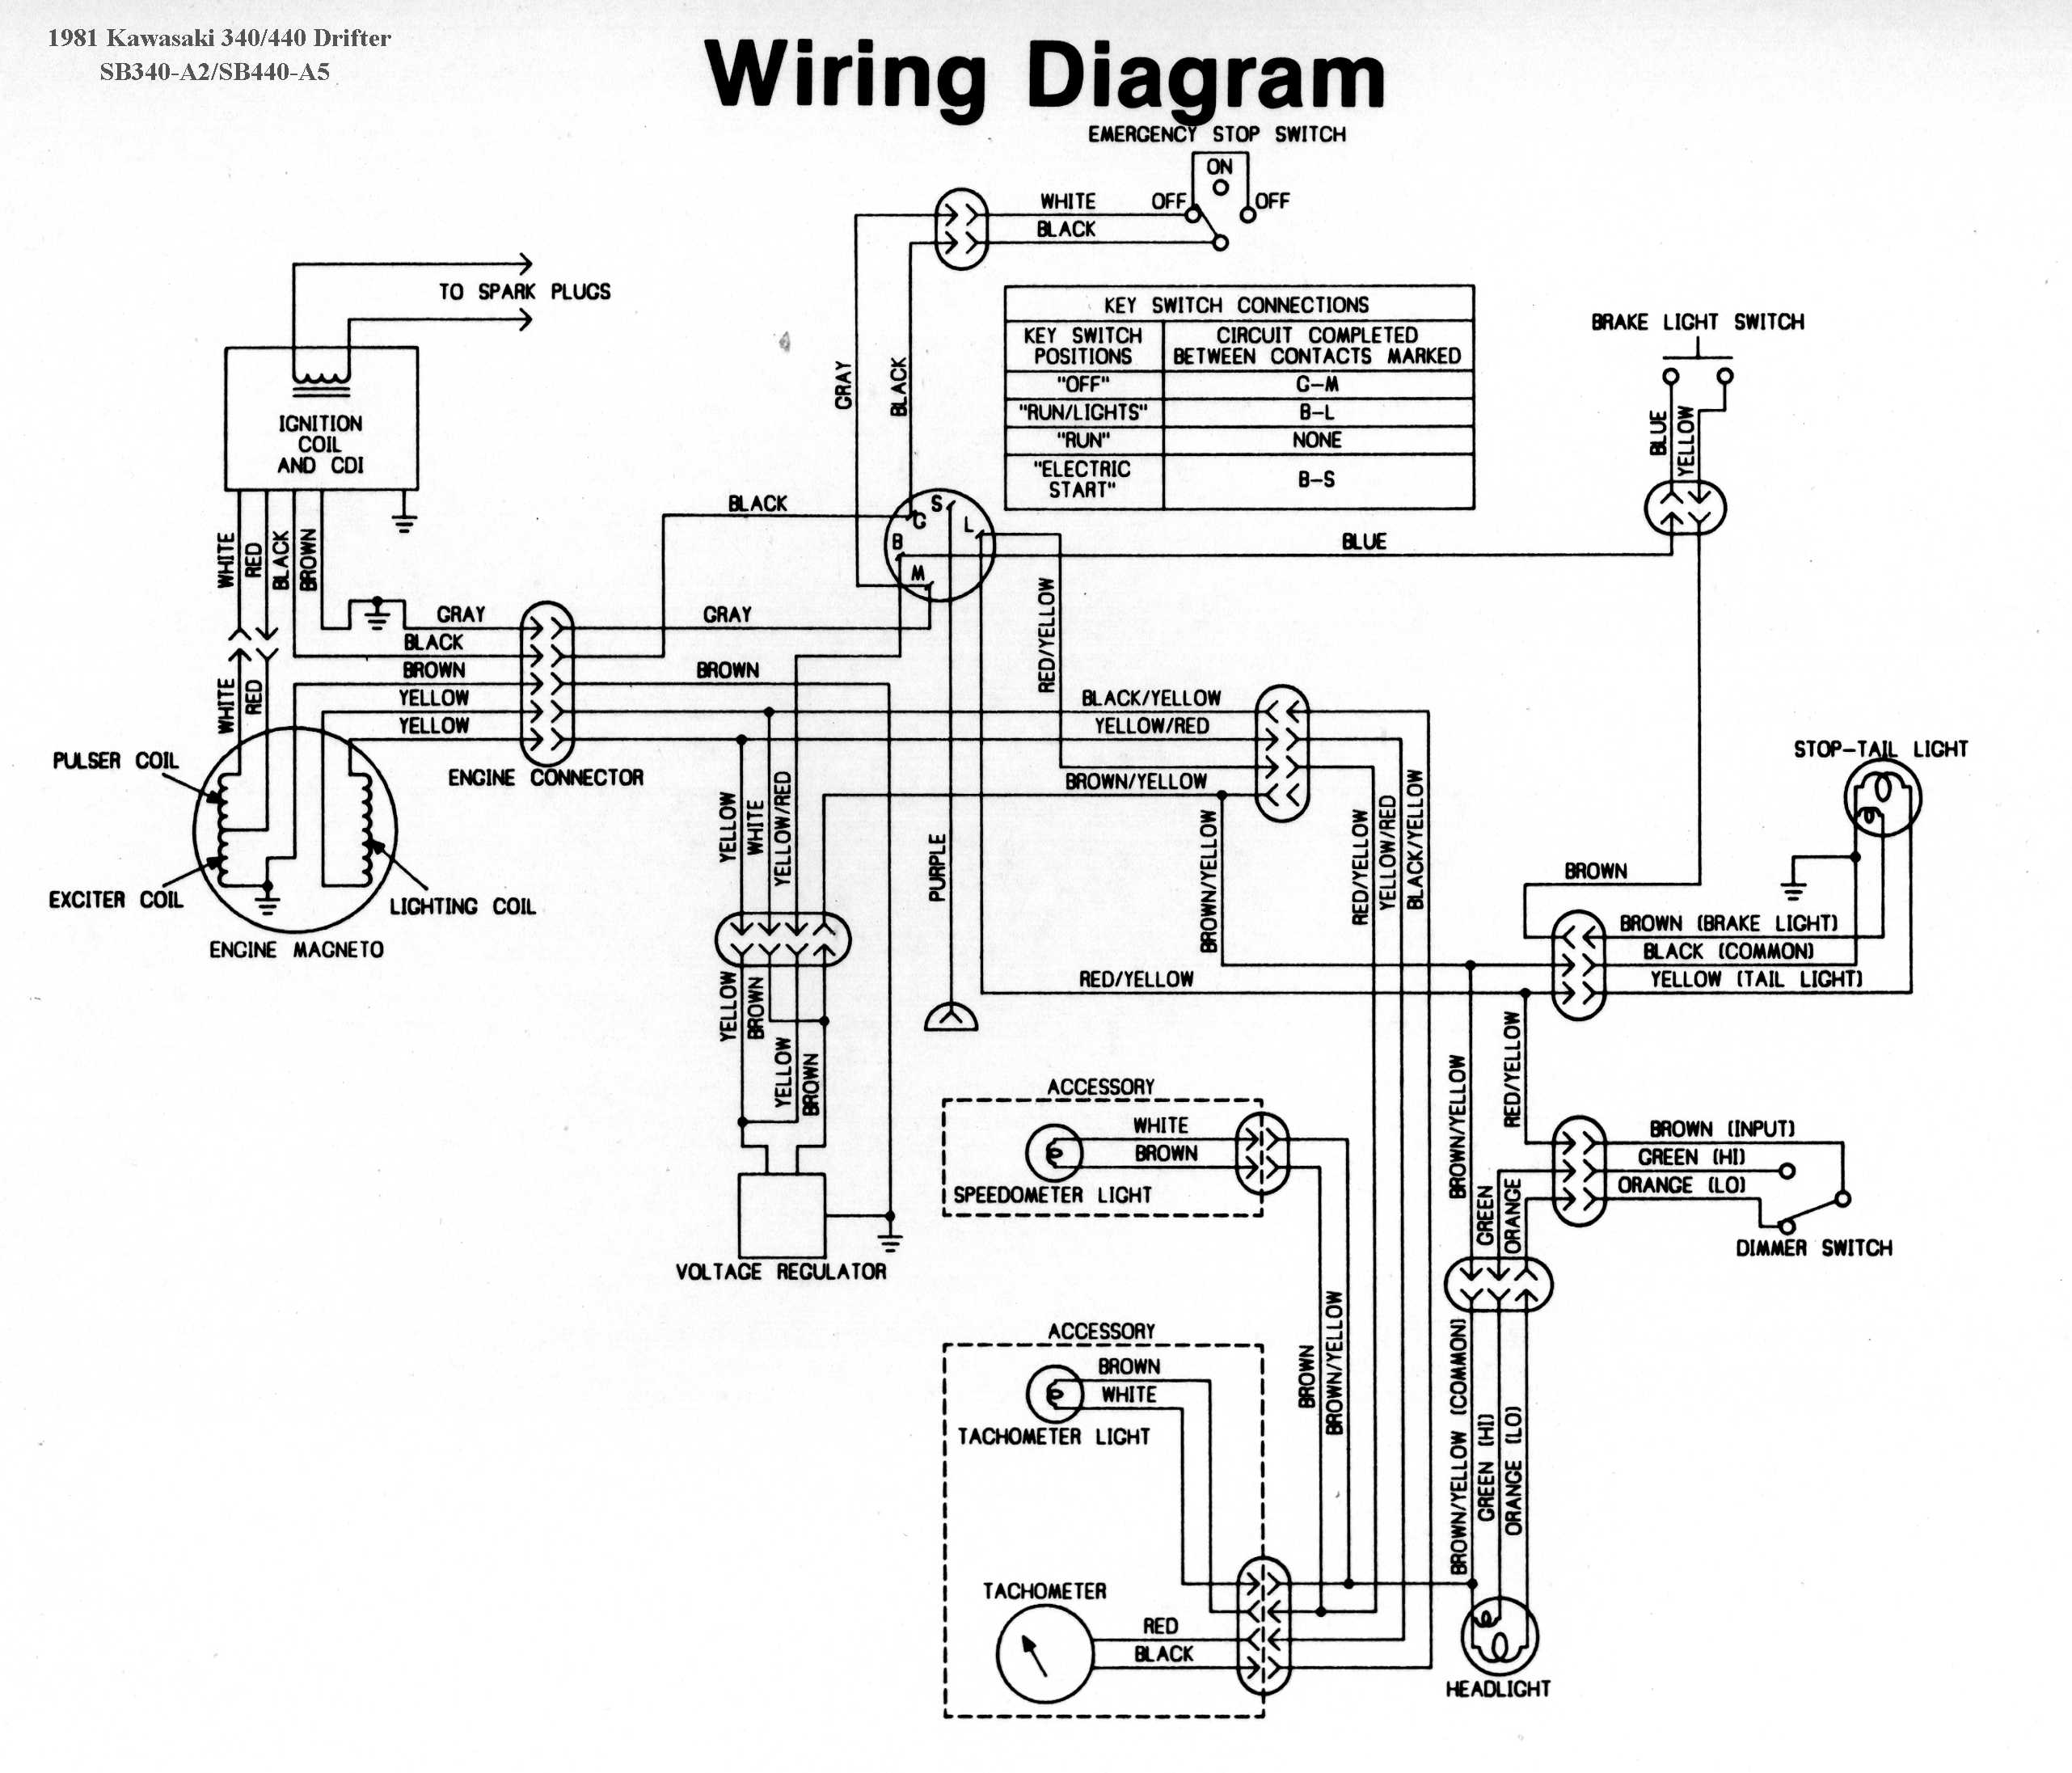 7016 simplicity tractor wiring diagram - nak amp ls400 wiring diagram for wiring  diagram schematics  wiring diagram schematics